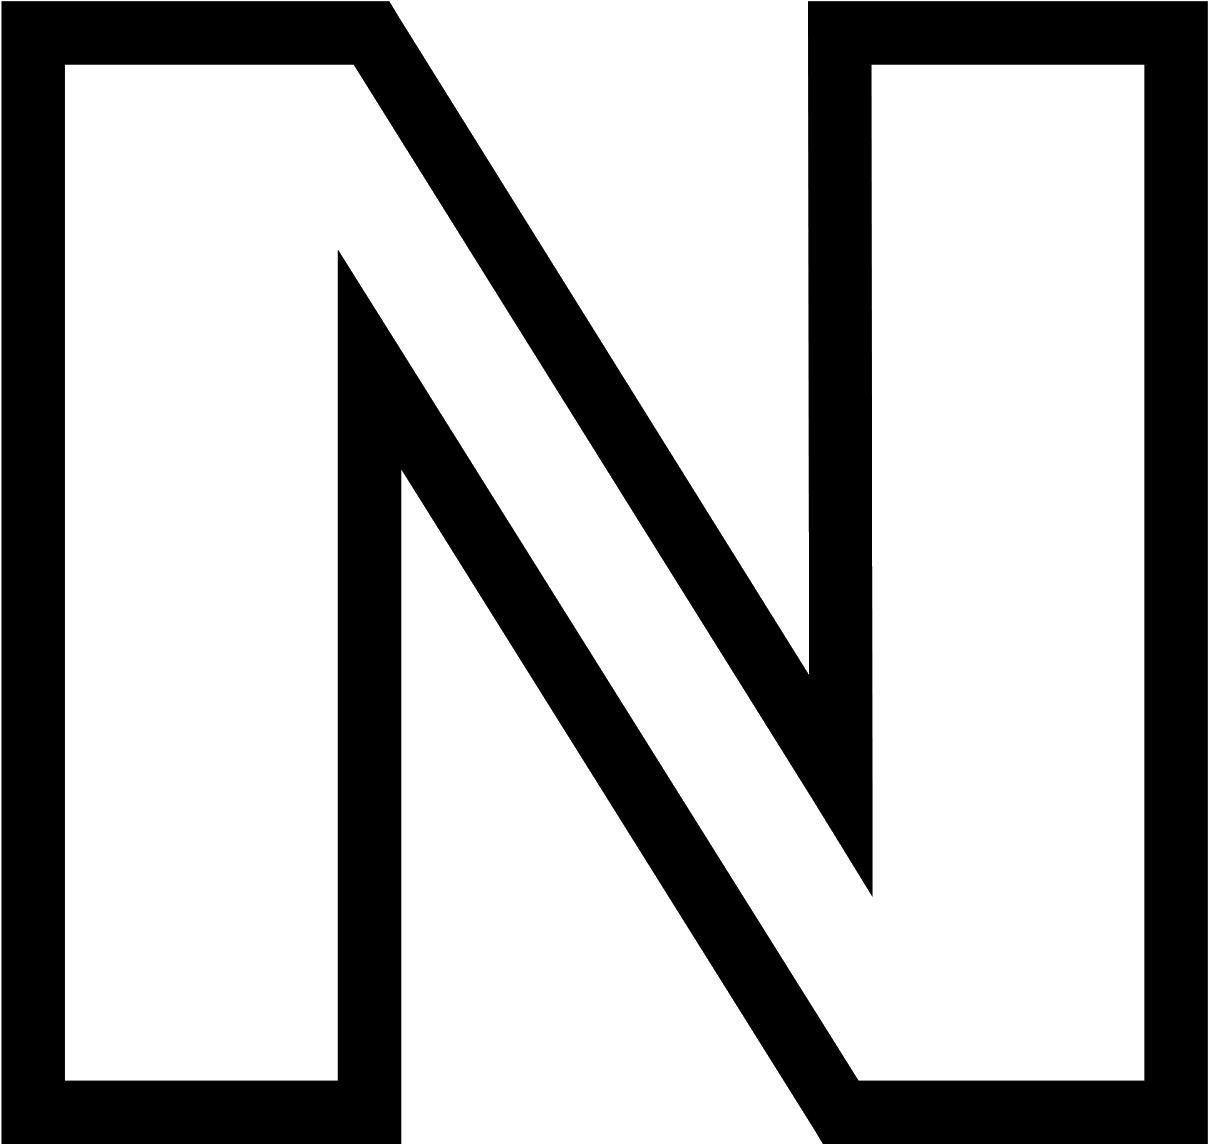 hight resolution of it s a block letter style rendering of the letter n clipart 1600x1600